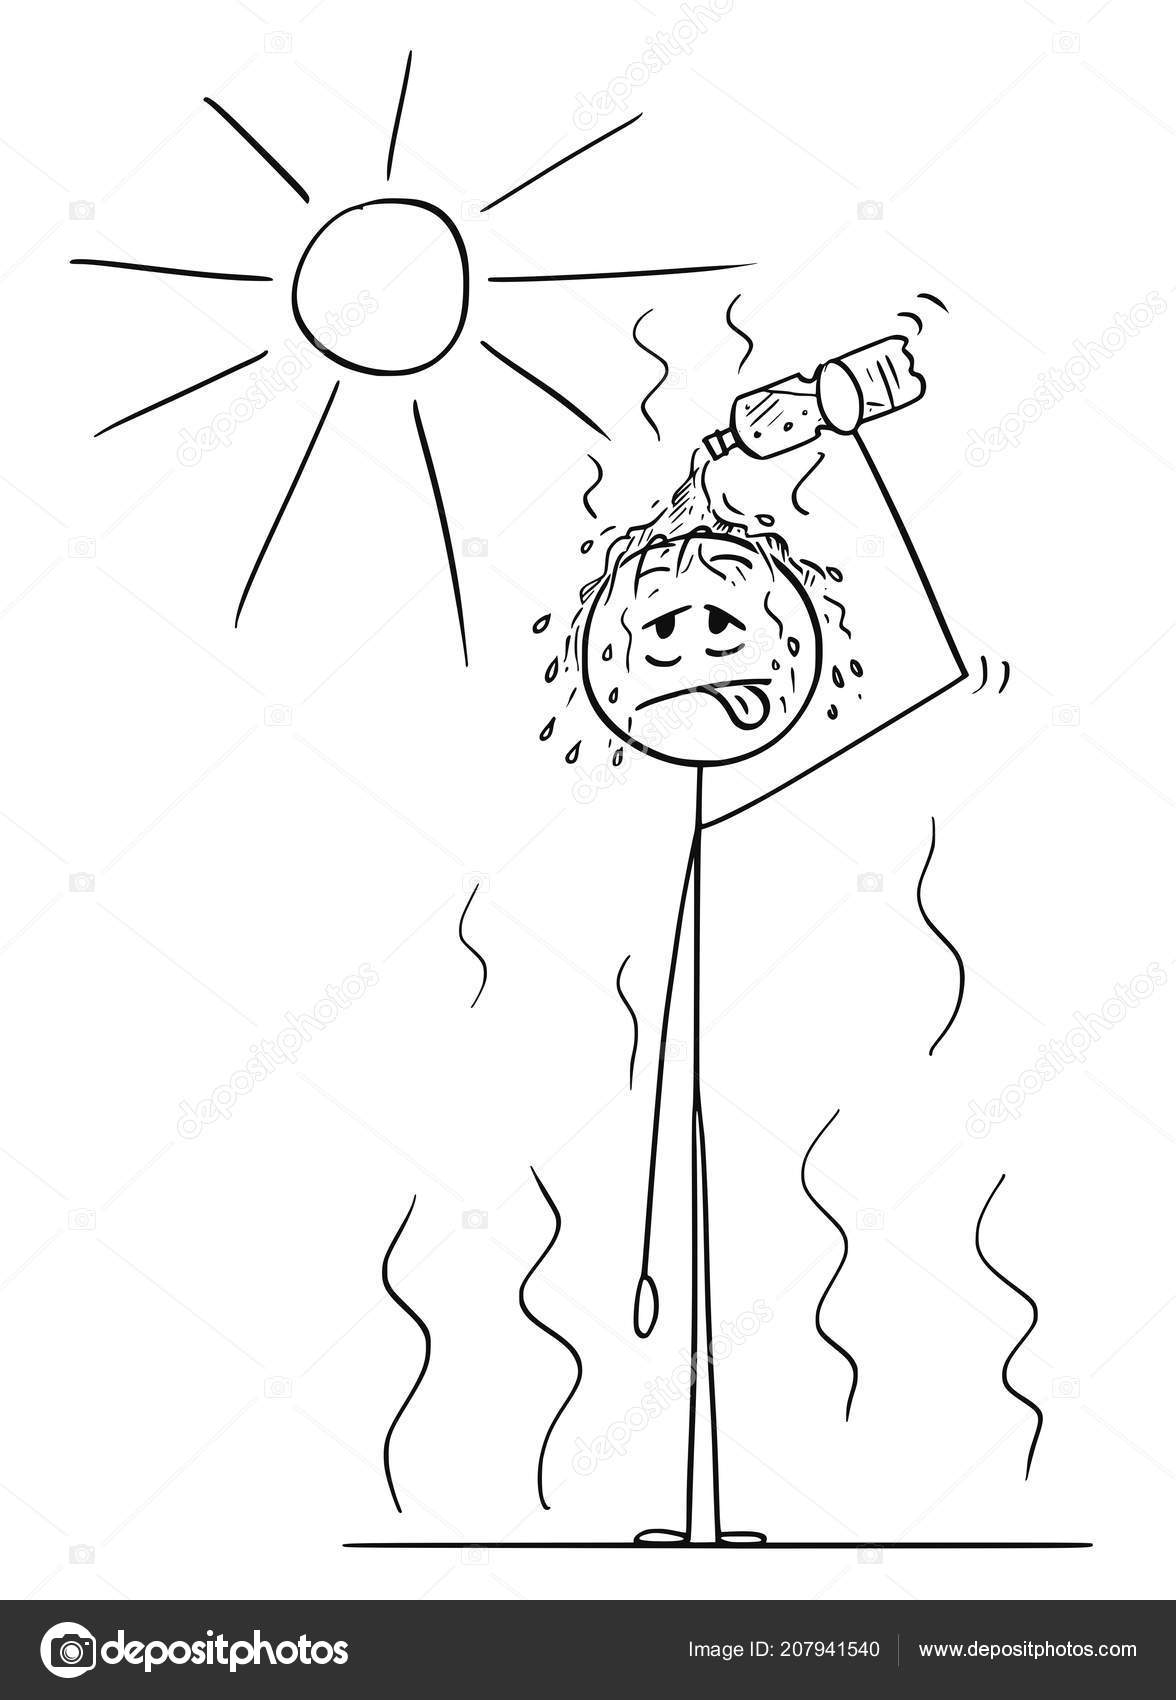 hight resolution of cartoon of man in hot summer pouring water from bottle on his head stock illustration